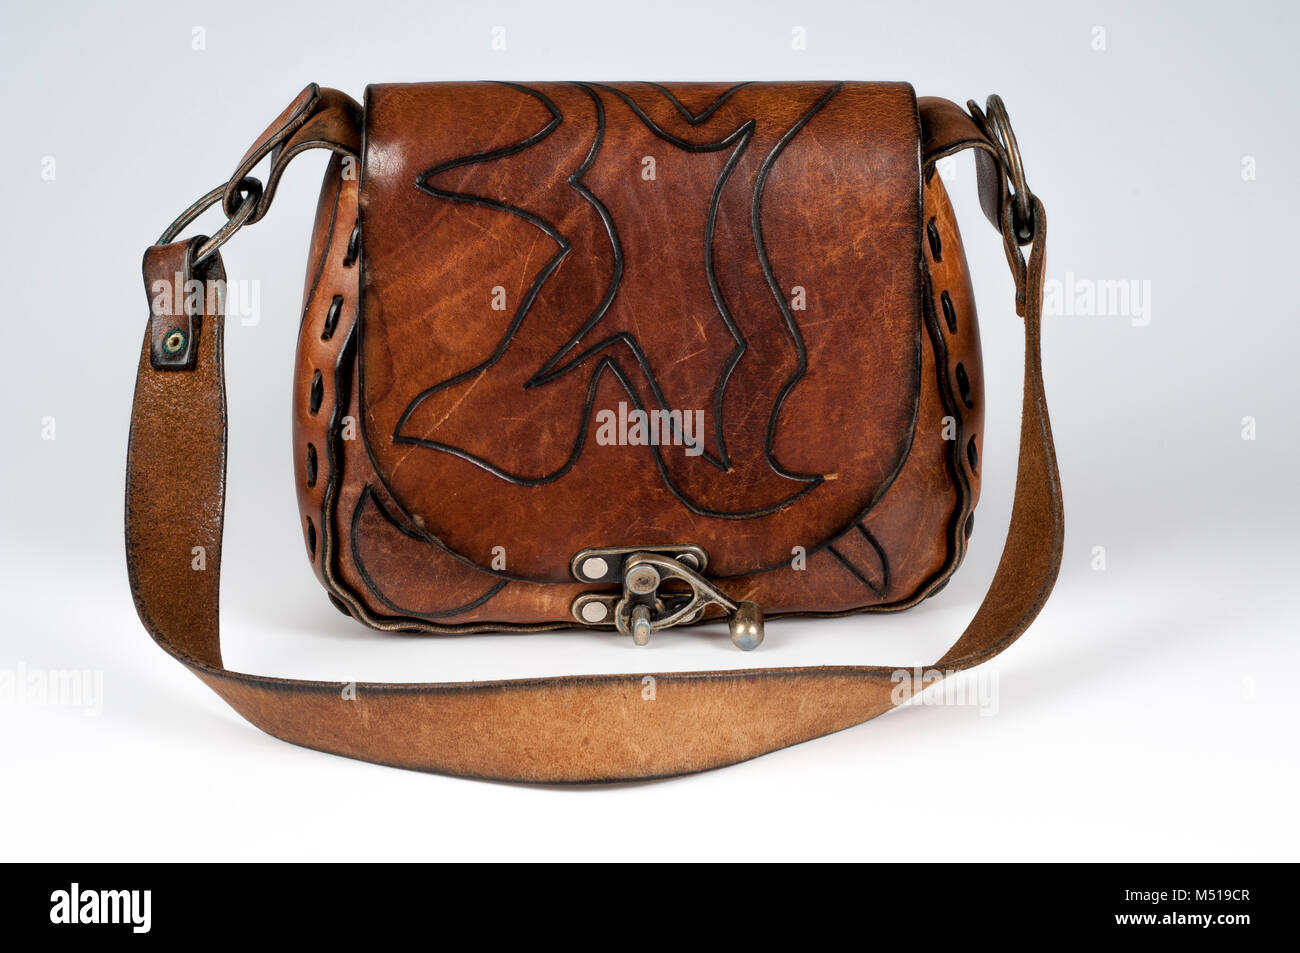 A Hard Brown Leather Purse Or Bag With Mechanical Catch - Stock Image